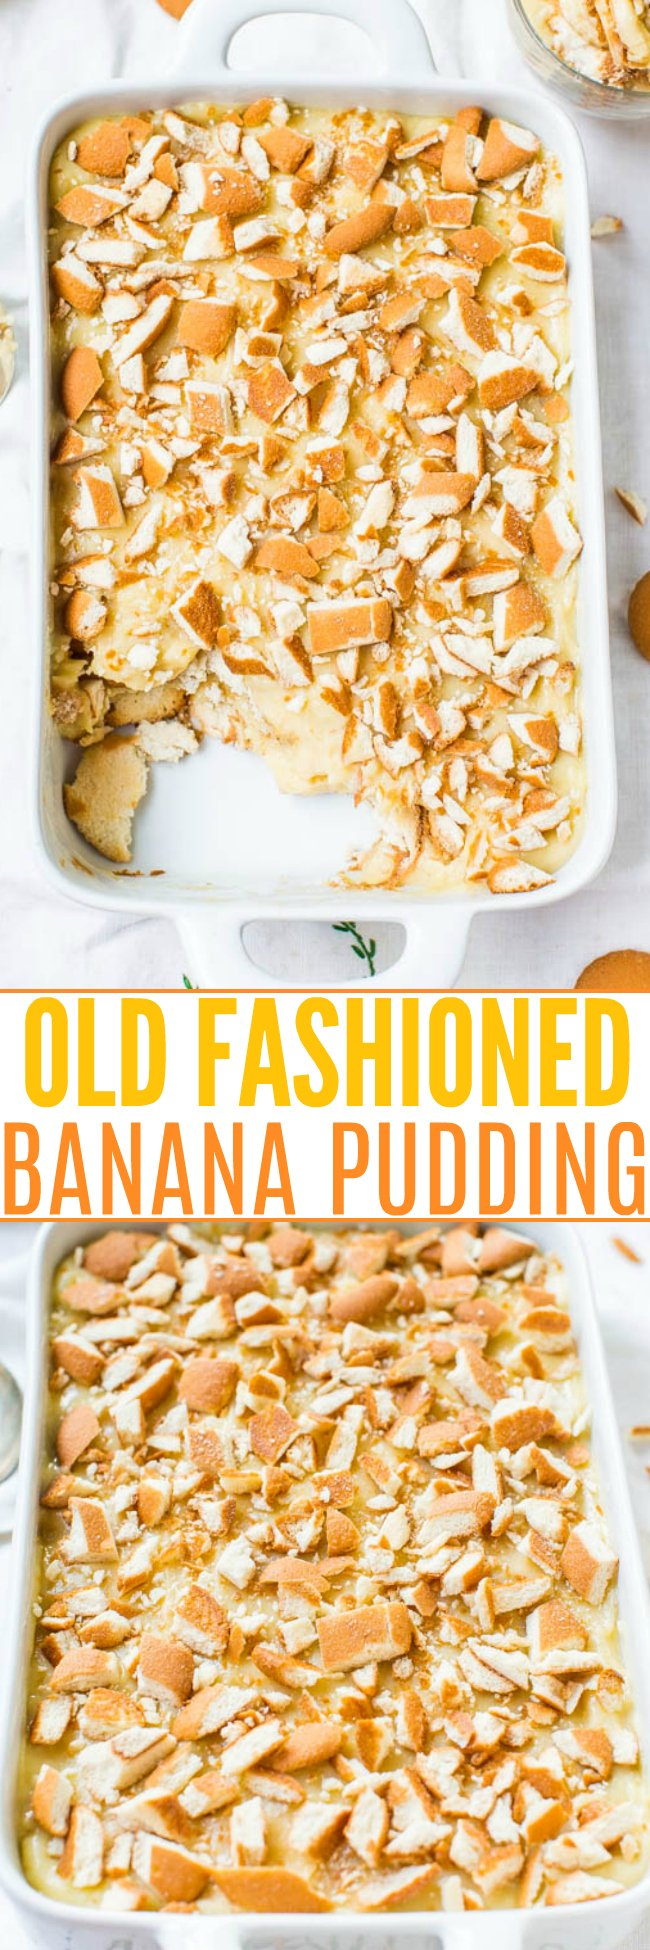 Old-Fashioned Banana Pudding Recipe — This 100% scratch old-fashioned banana pudding recipe is made with homemade vanilla pudding, ripe bananas, and Nilla Wafers. It's EASY to assemble and SO GOOD!!